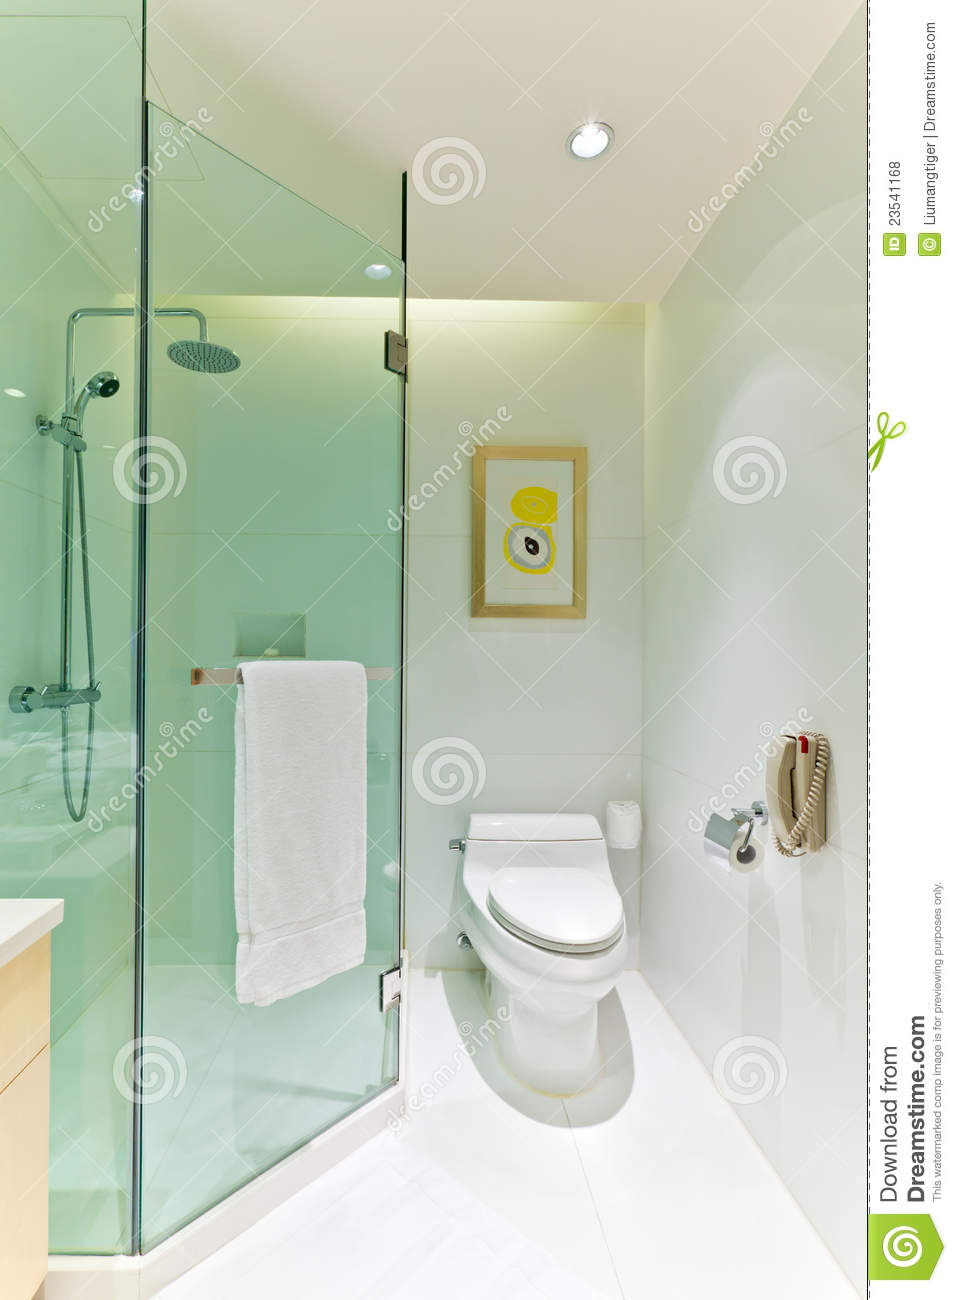 Bathroom 4 Royalty Free Stock Photos Image 23541168